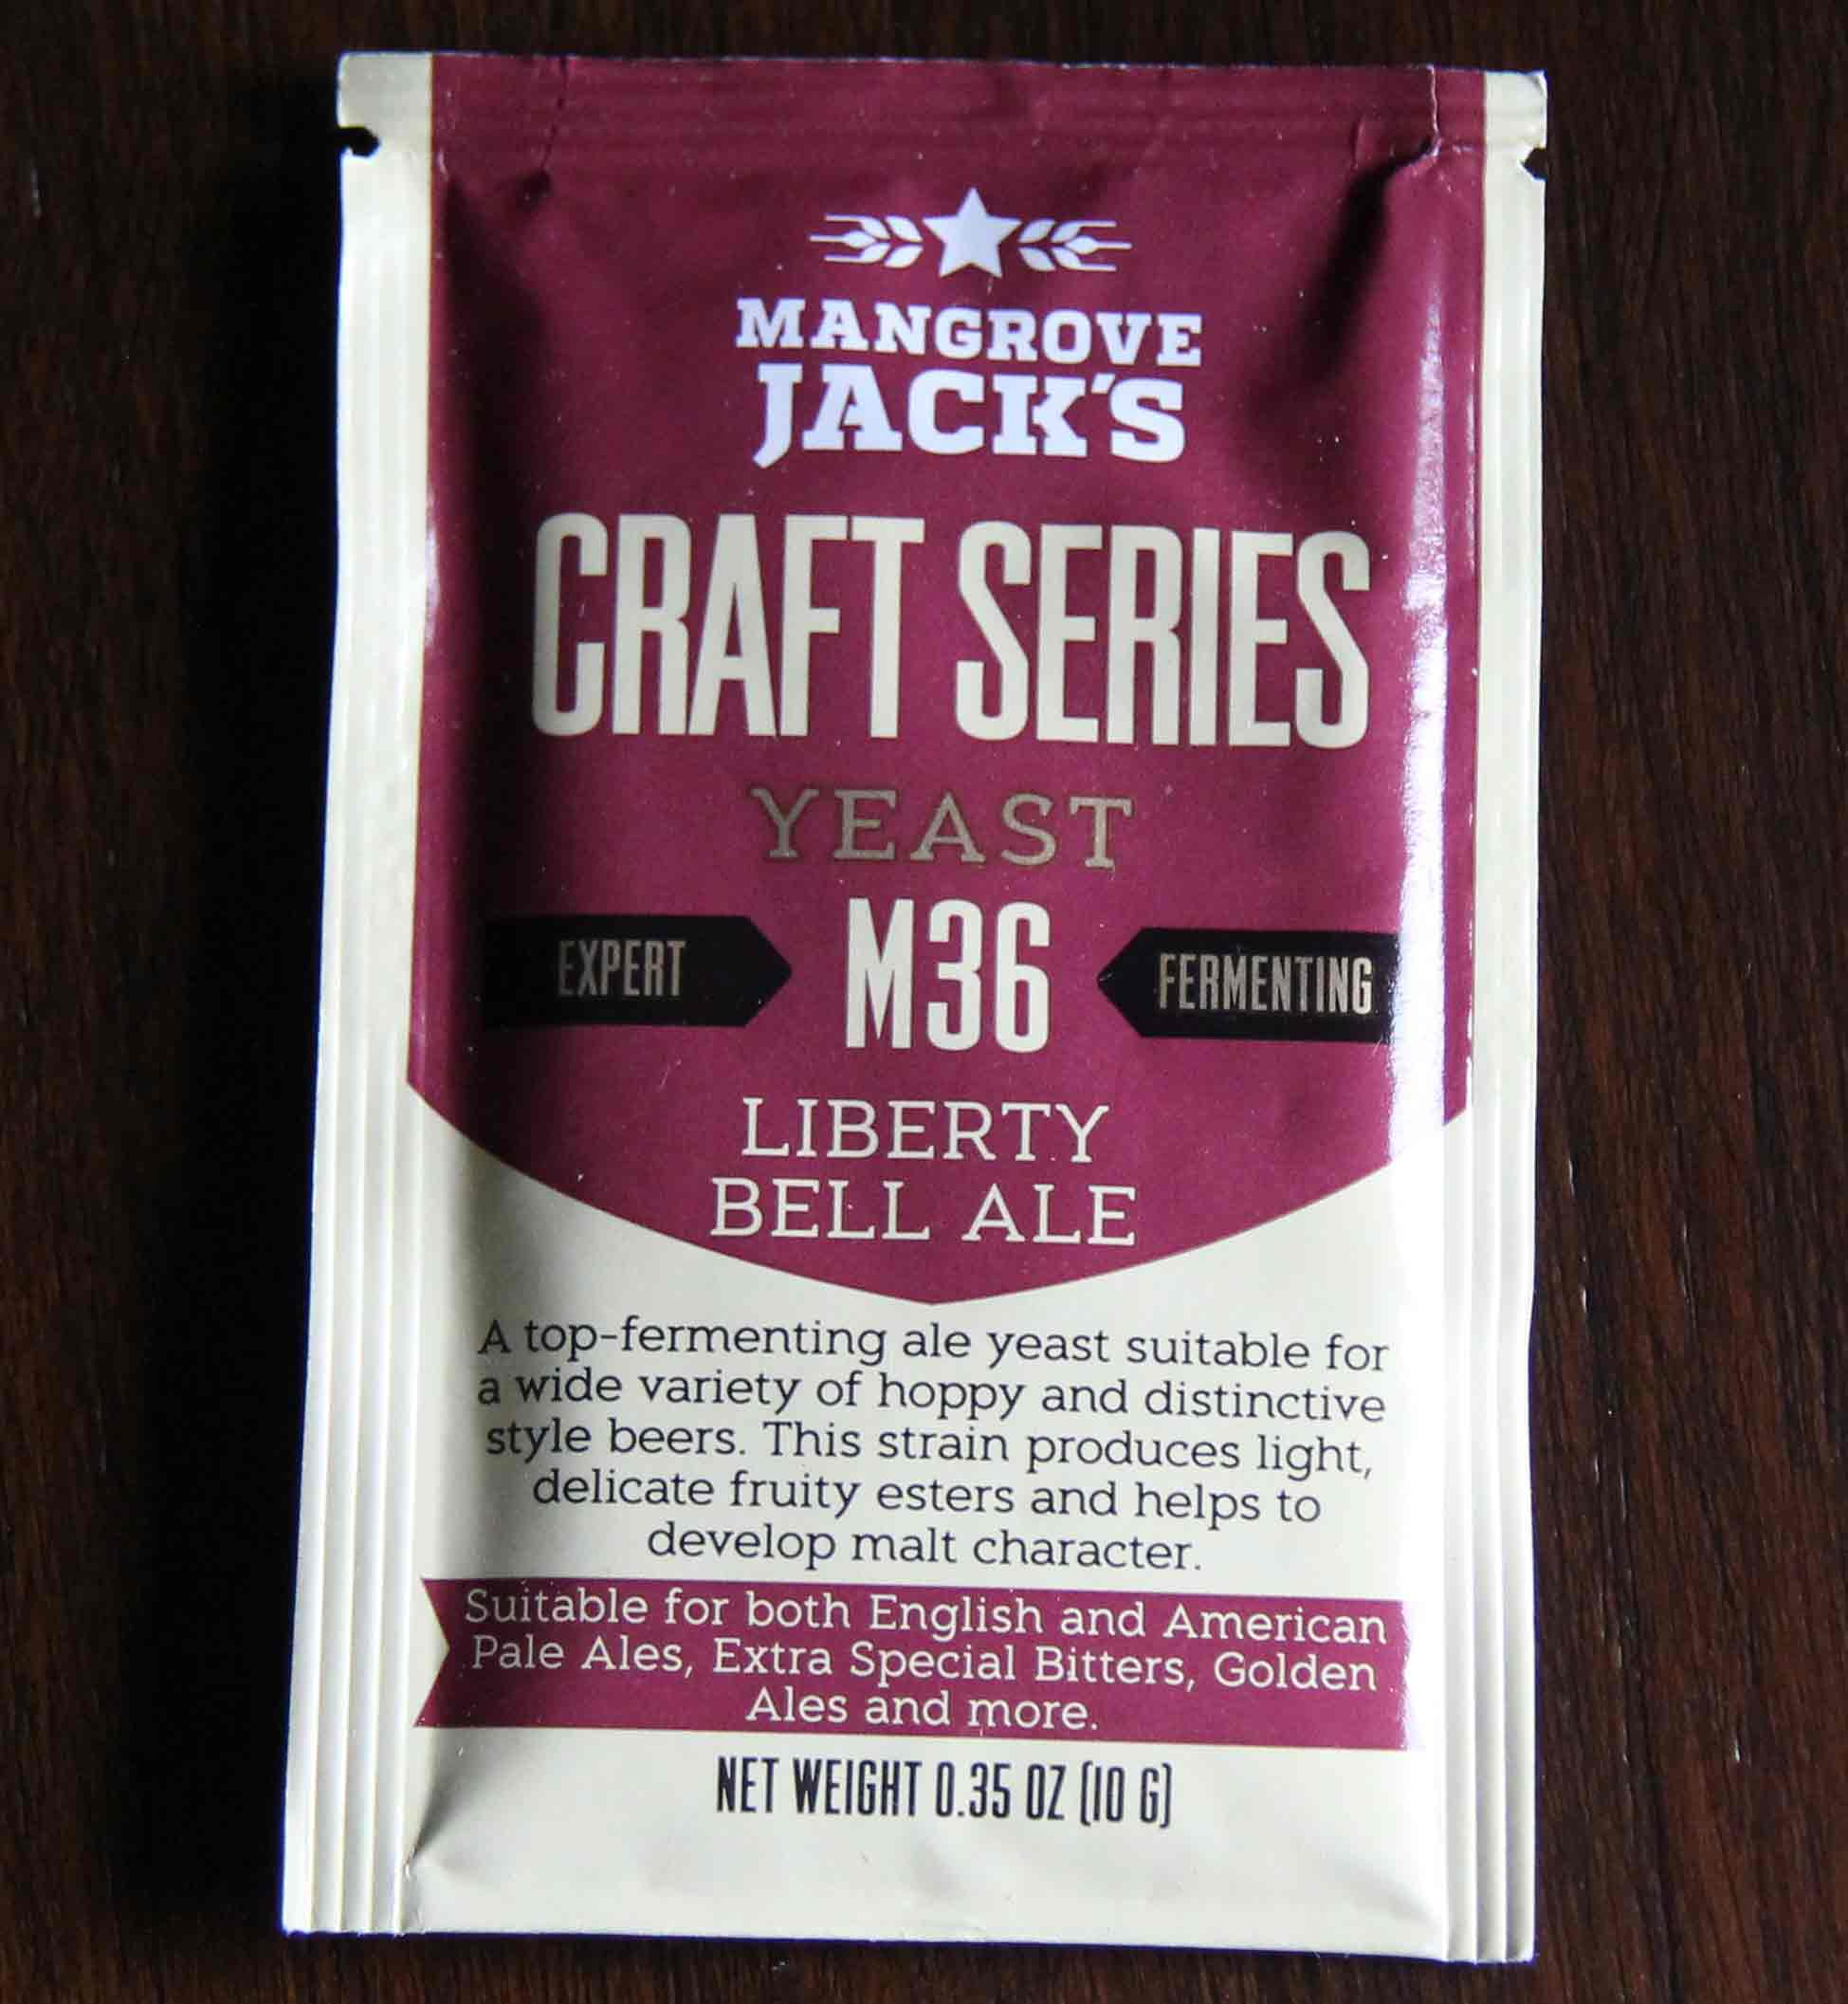 Mangrove Jack's - M36 LIBERTY BELL ALE Dry Yeast